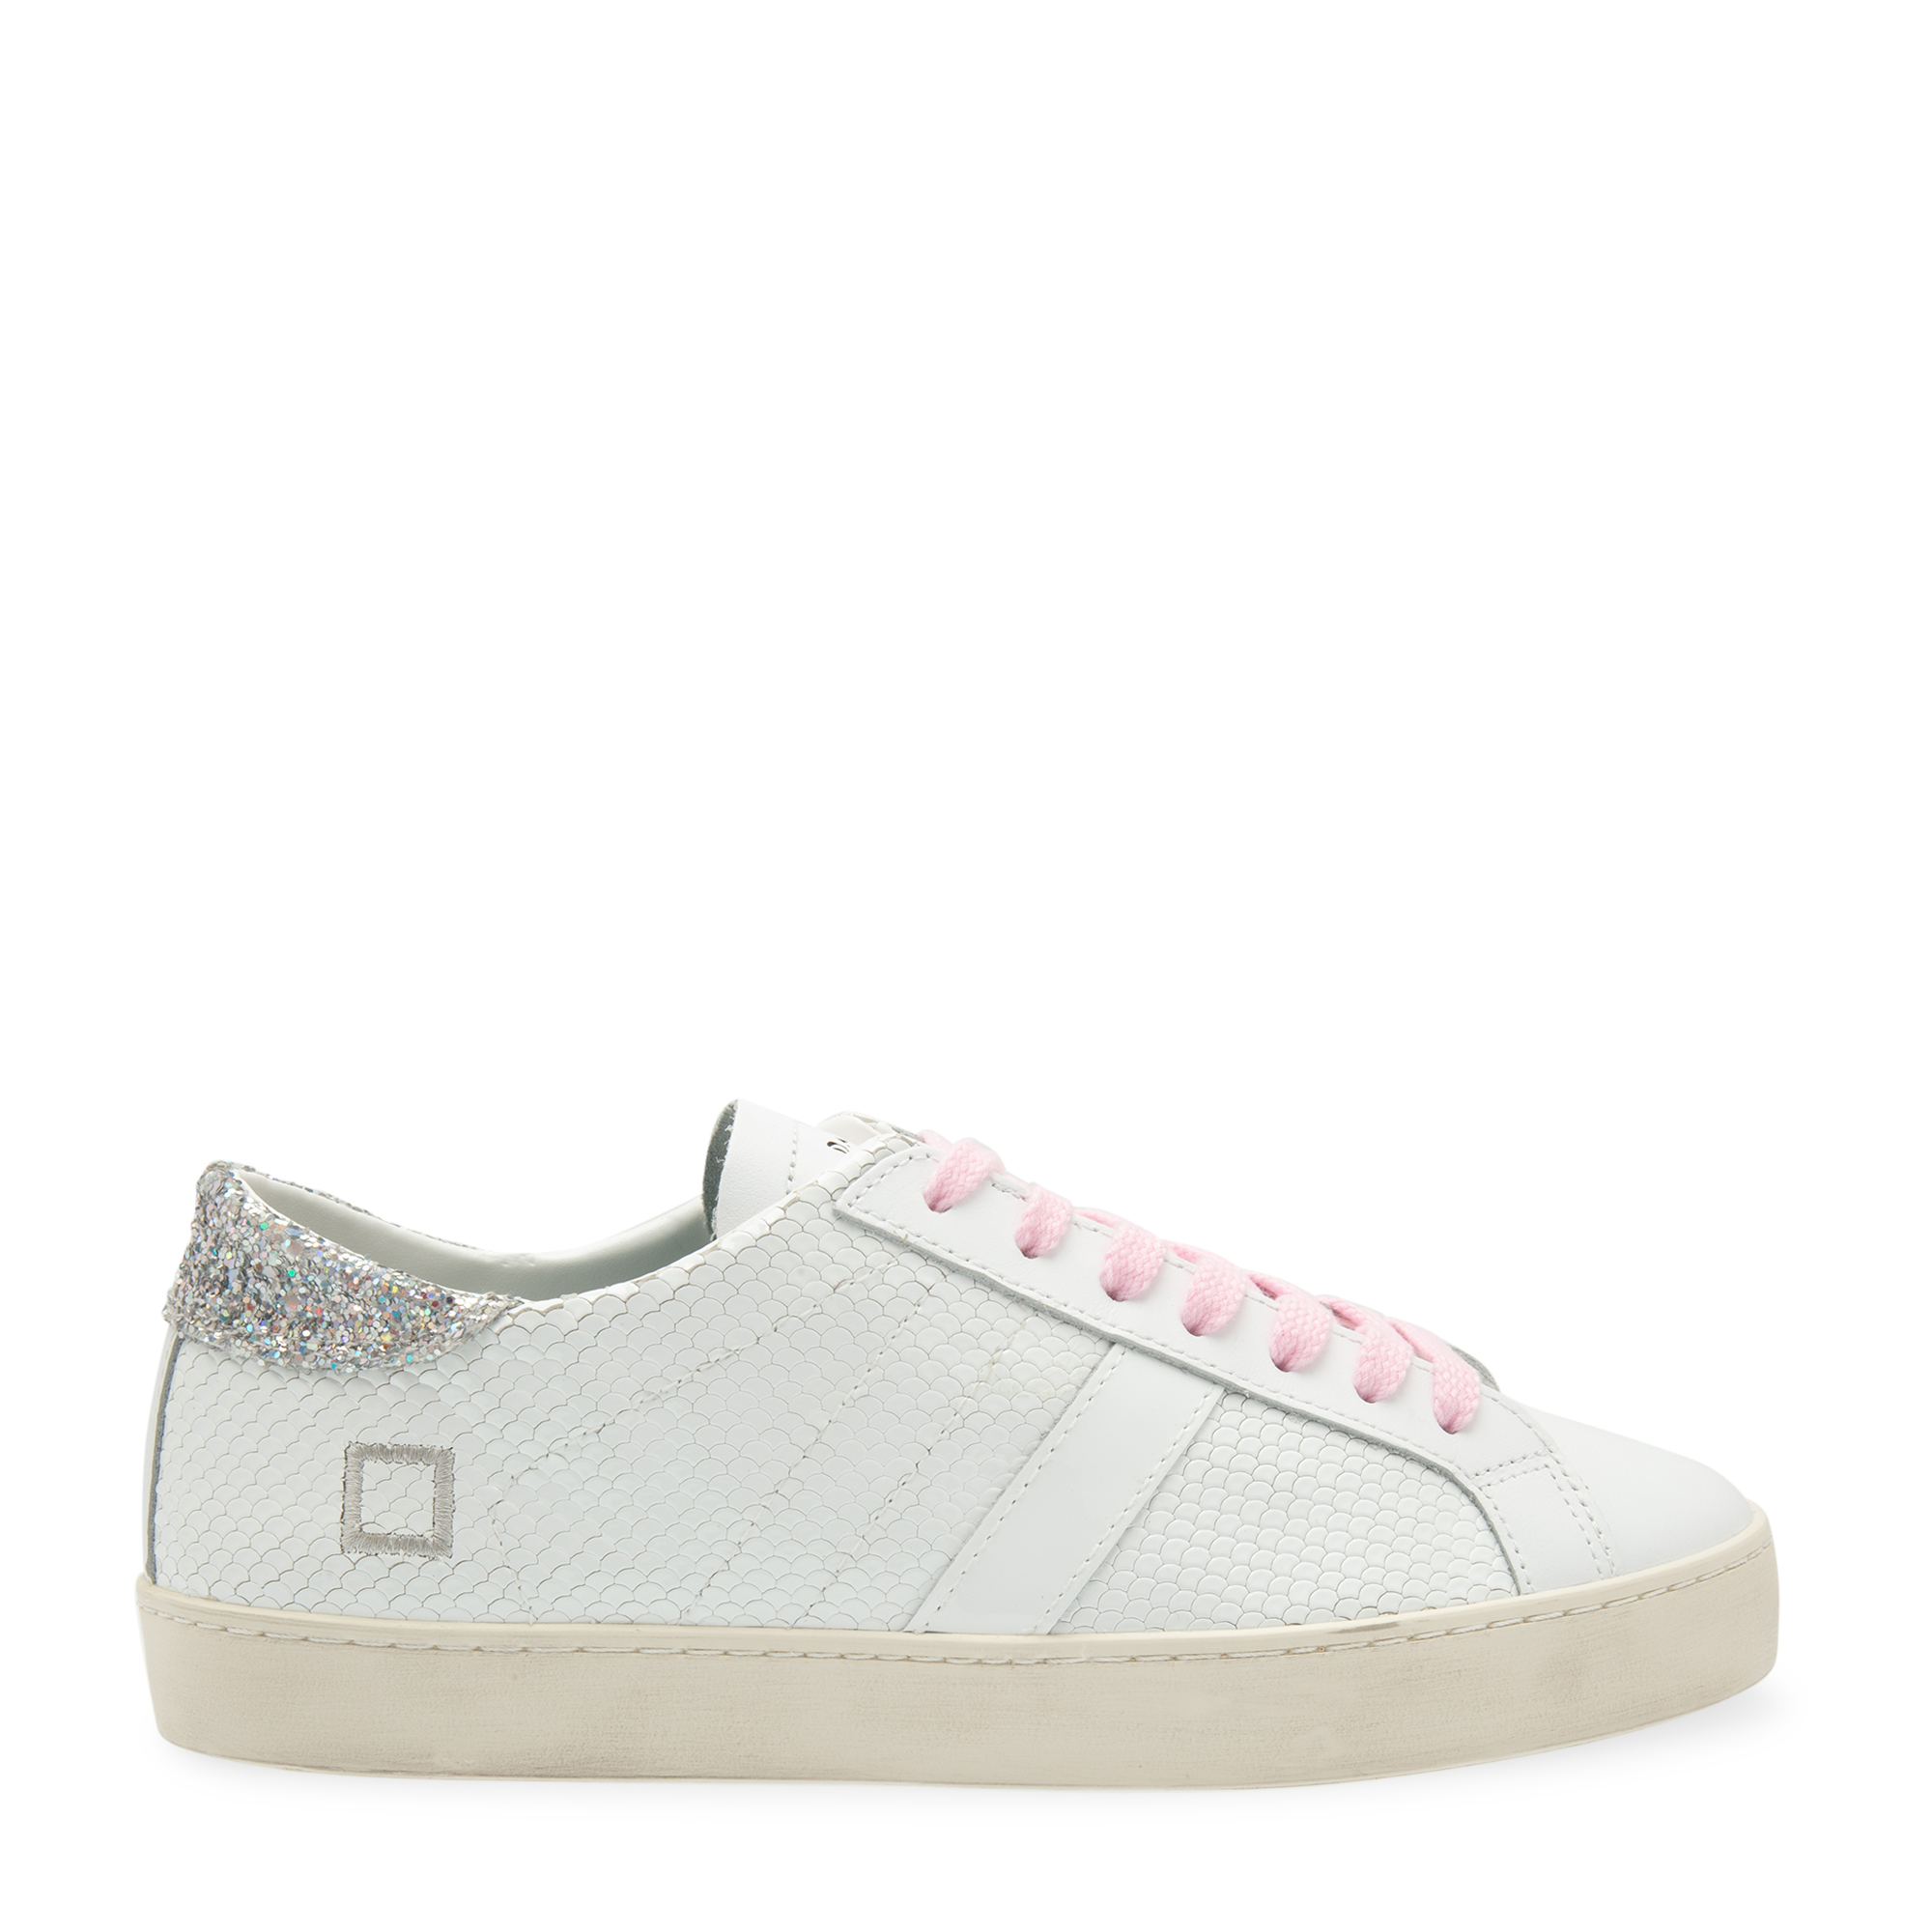 Hill sneakers